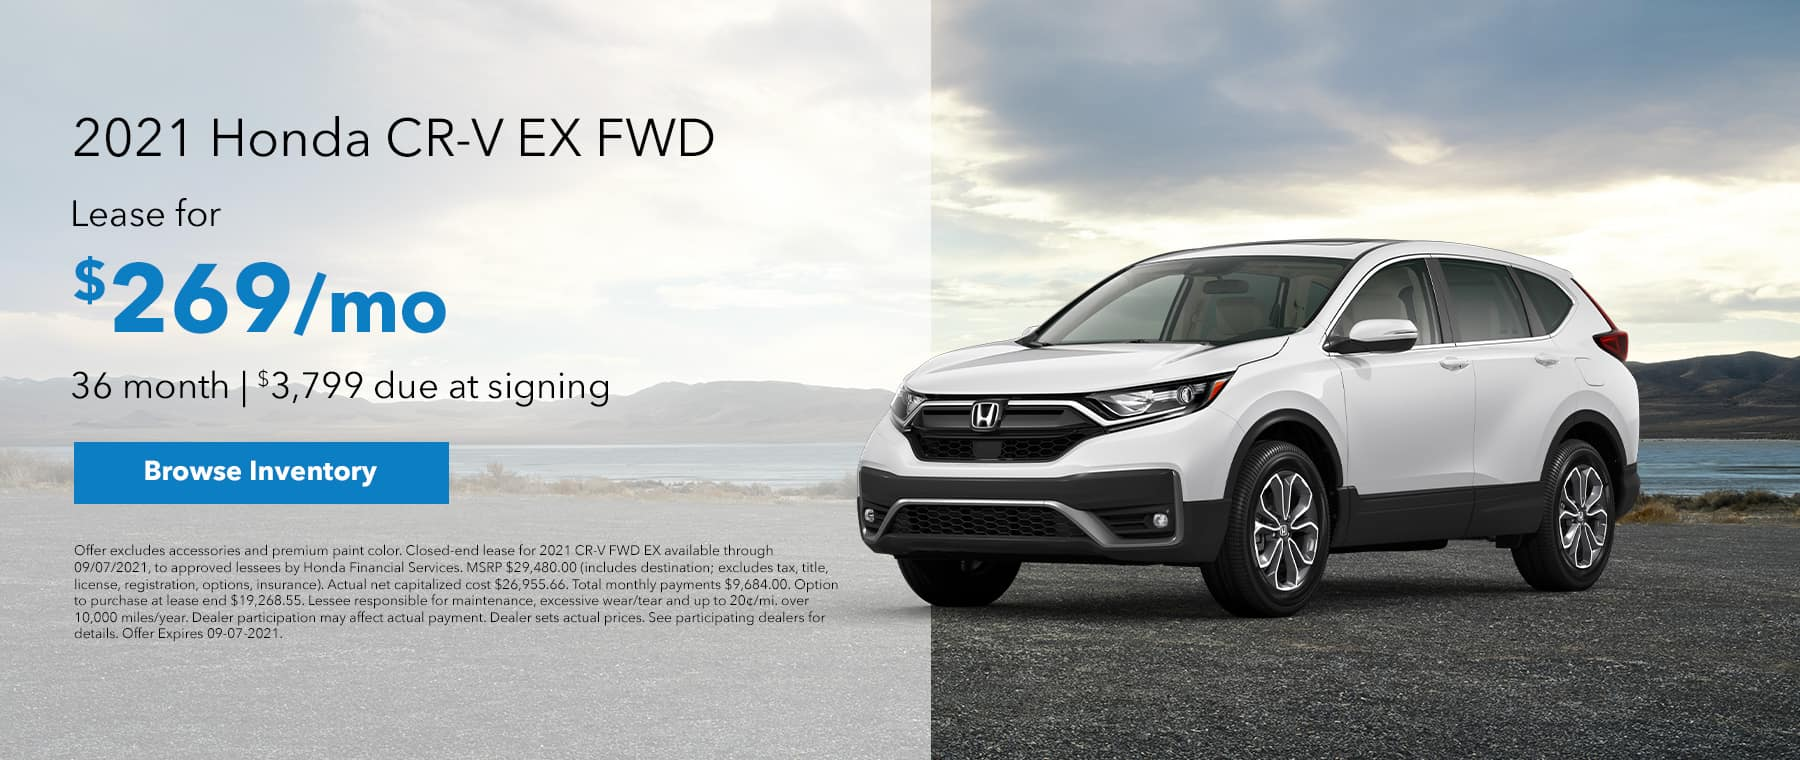 2021 Accord CVT LX. $239 Per month for 36 months. $2,899 due at lease signing.